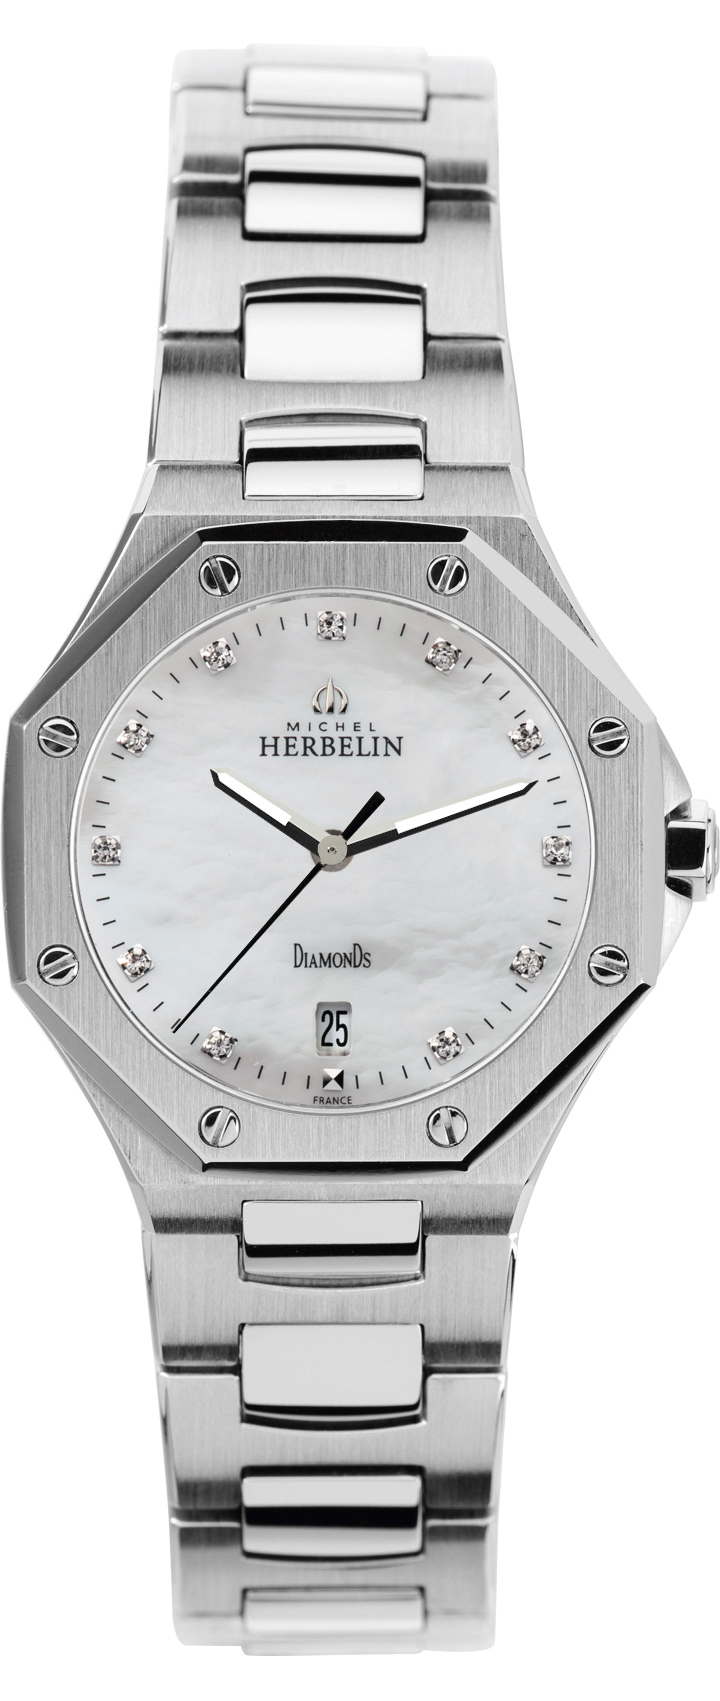 67931 - Michel Herbelin Small Odyssey Diamond set Steel Bracelet Watch